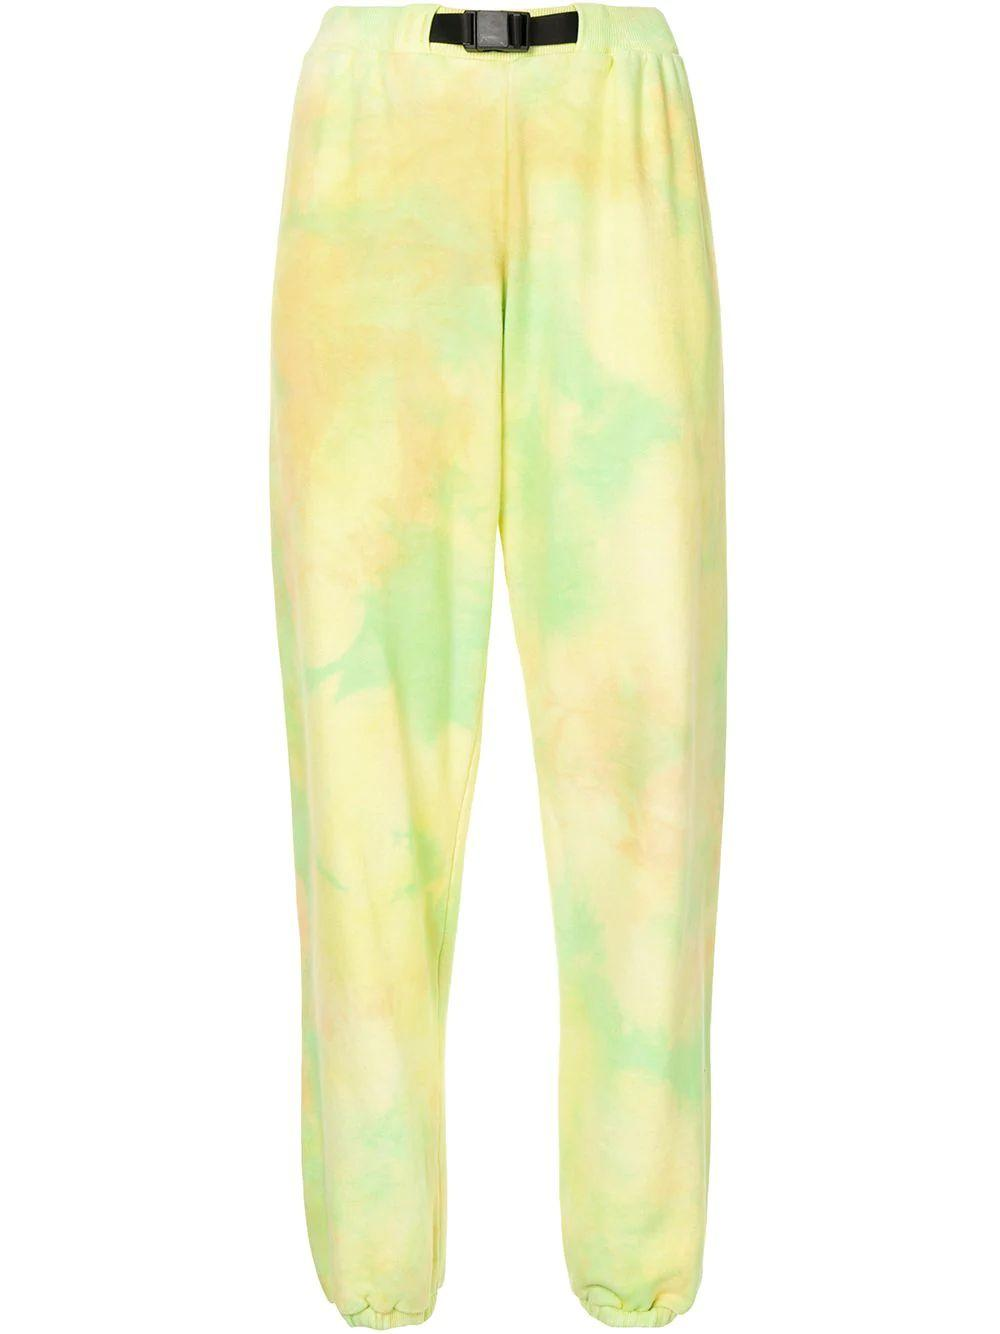 Marble Mix Belted Sweatpants Item # WC156M35566A